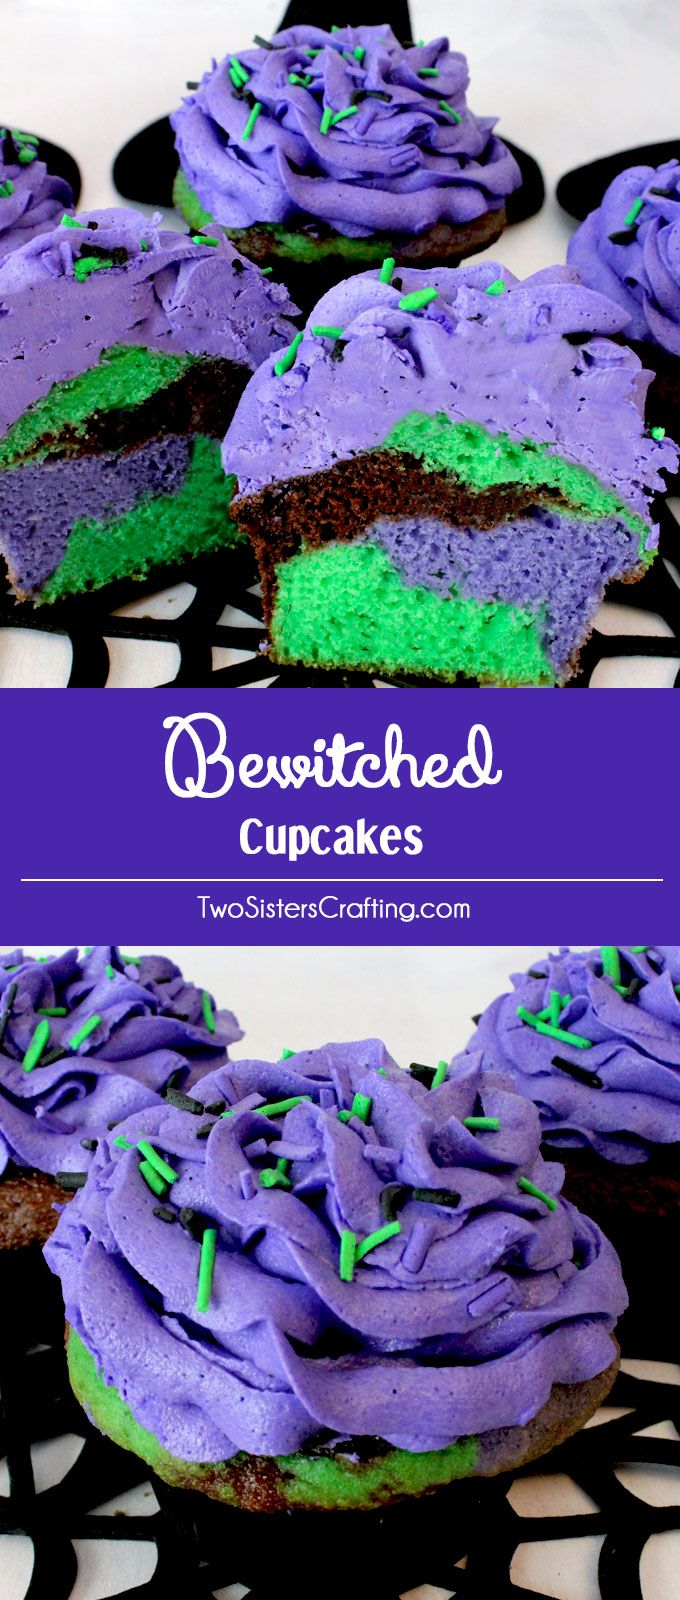 Our Bewitched Cupcakes are beautiful and colorful Halloween Treats that are easy to create and will make a big impact at your Halloween party. Bright and colorful and super tasty, these will be your family's favorite Halloween Dessert. Pin these witchy Halloween Cupcakes for later and follow us for more fun Halloween Food Ideas.